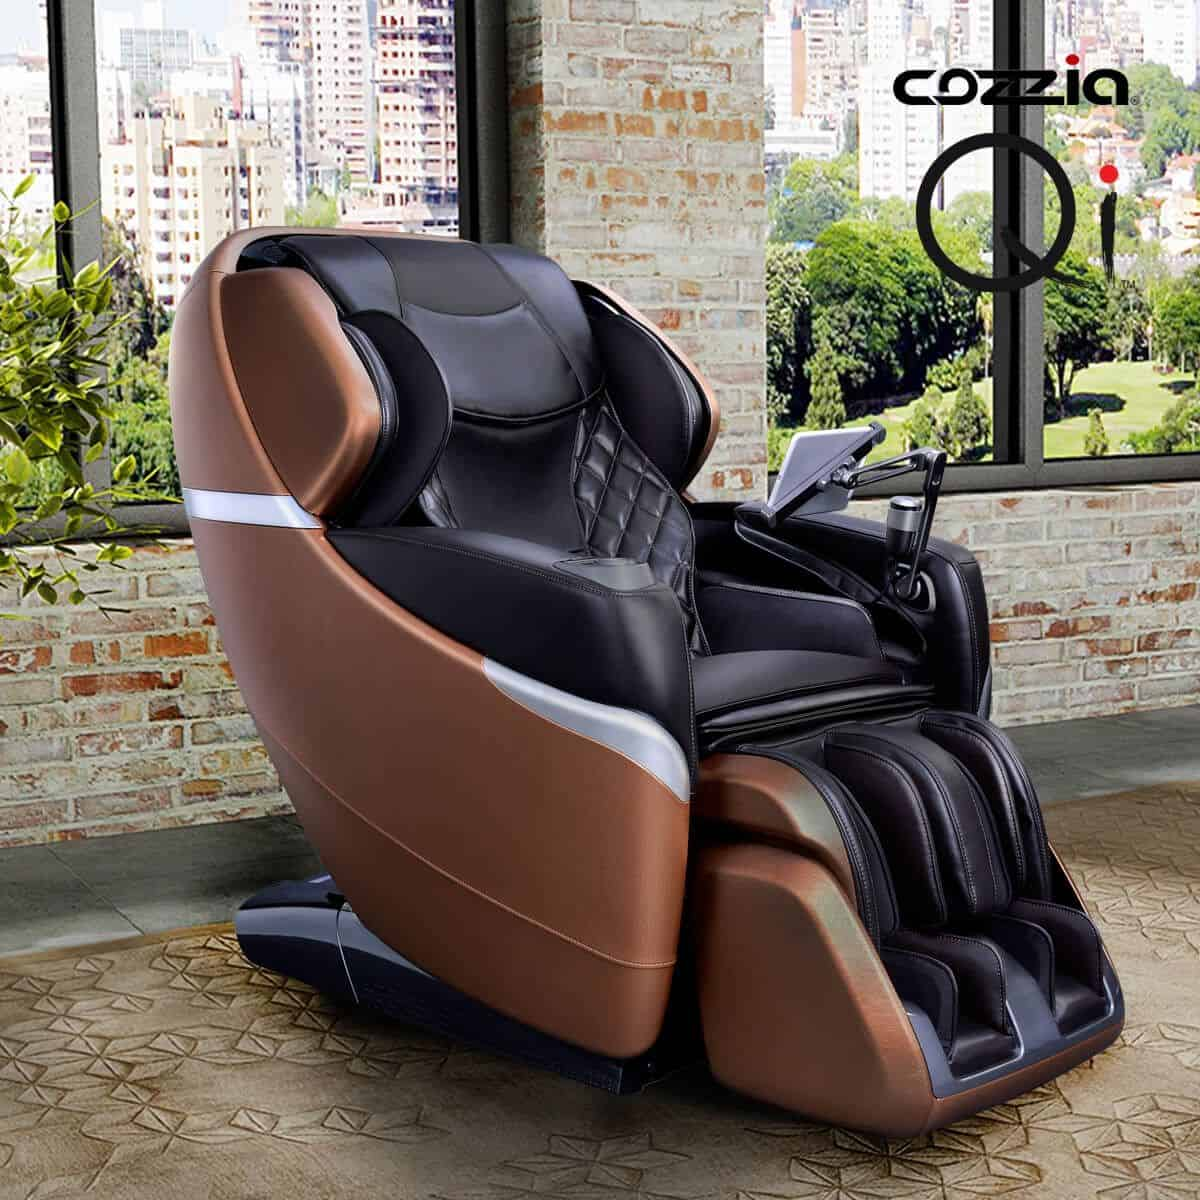 Best Massage Chair In The World Massage Chair Comparison Cozzia Qi Vs Human Touch Novo Xt2